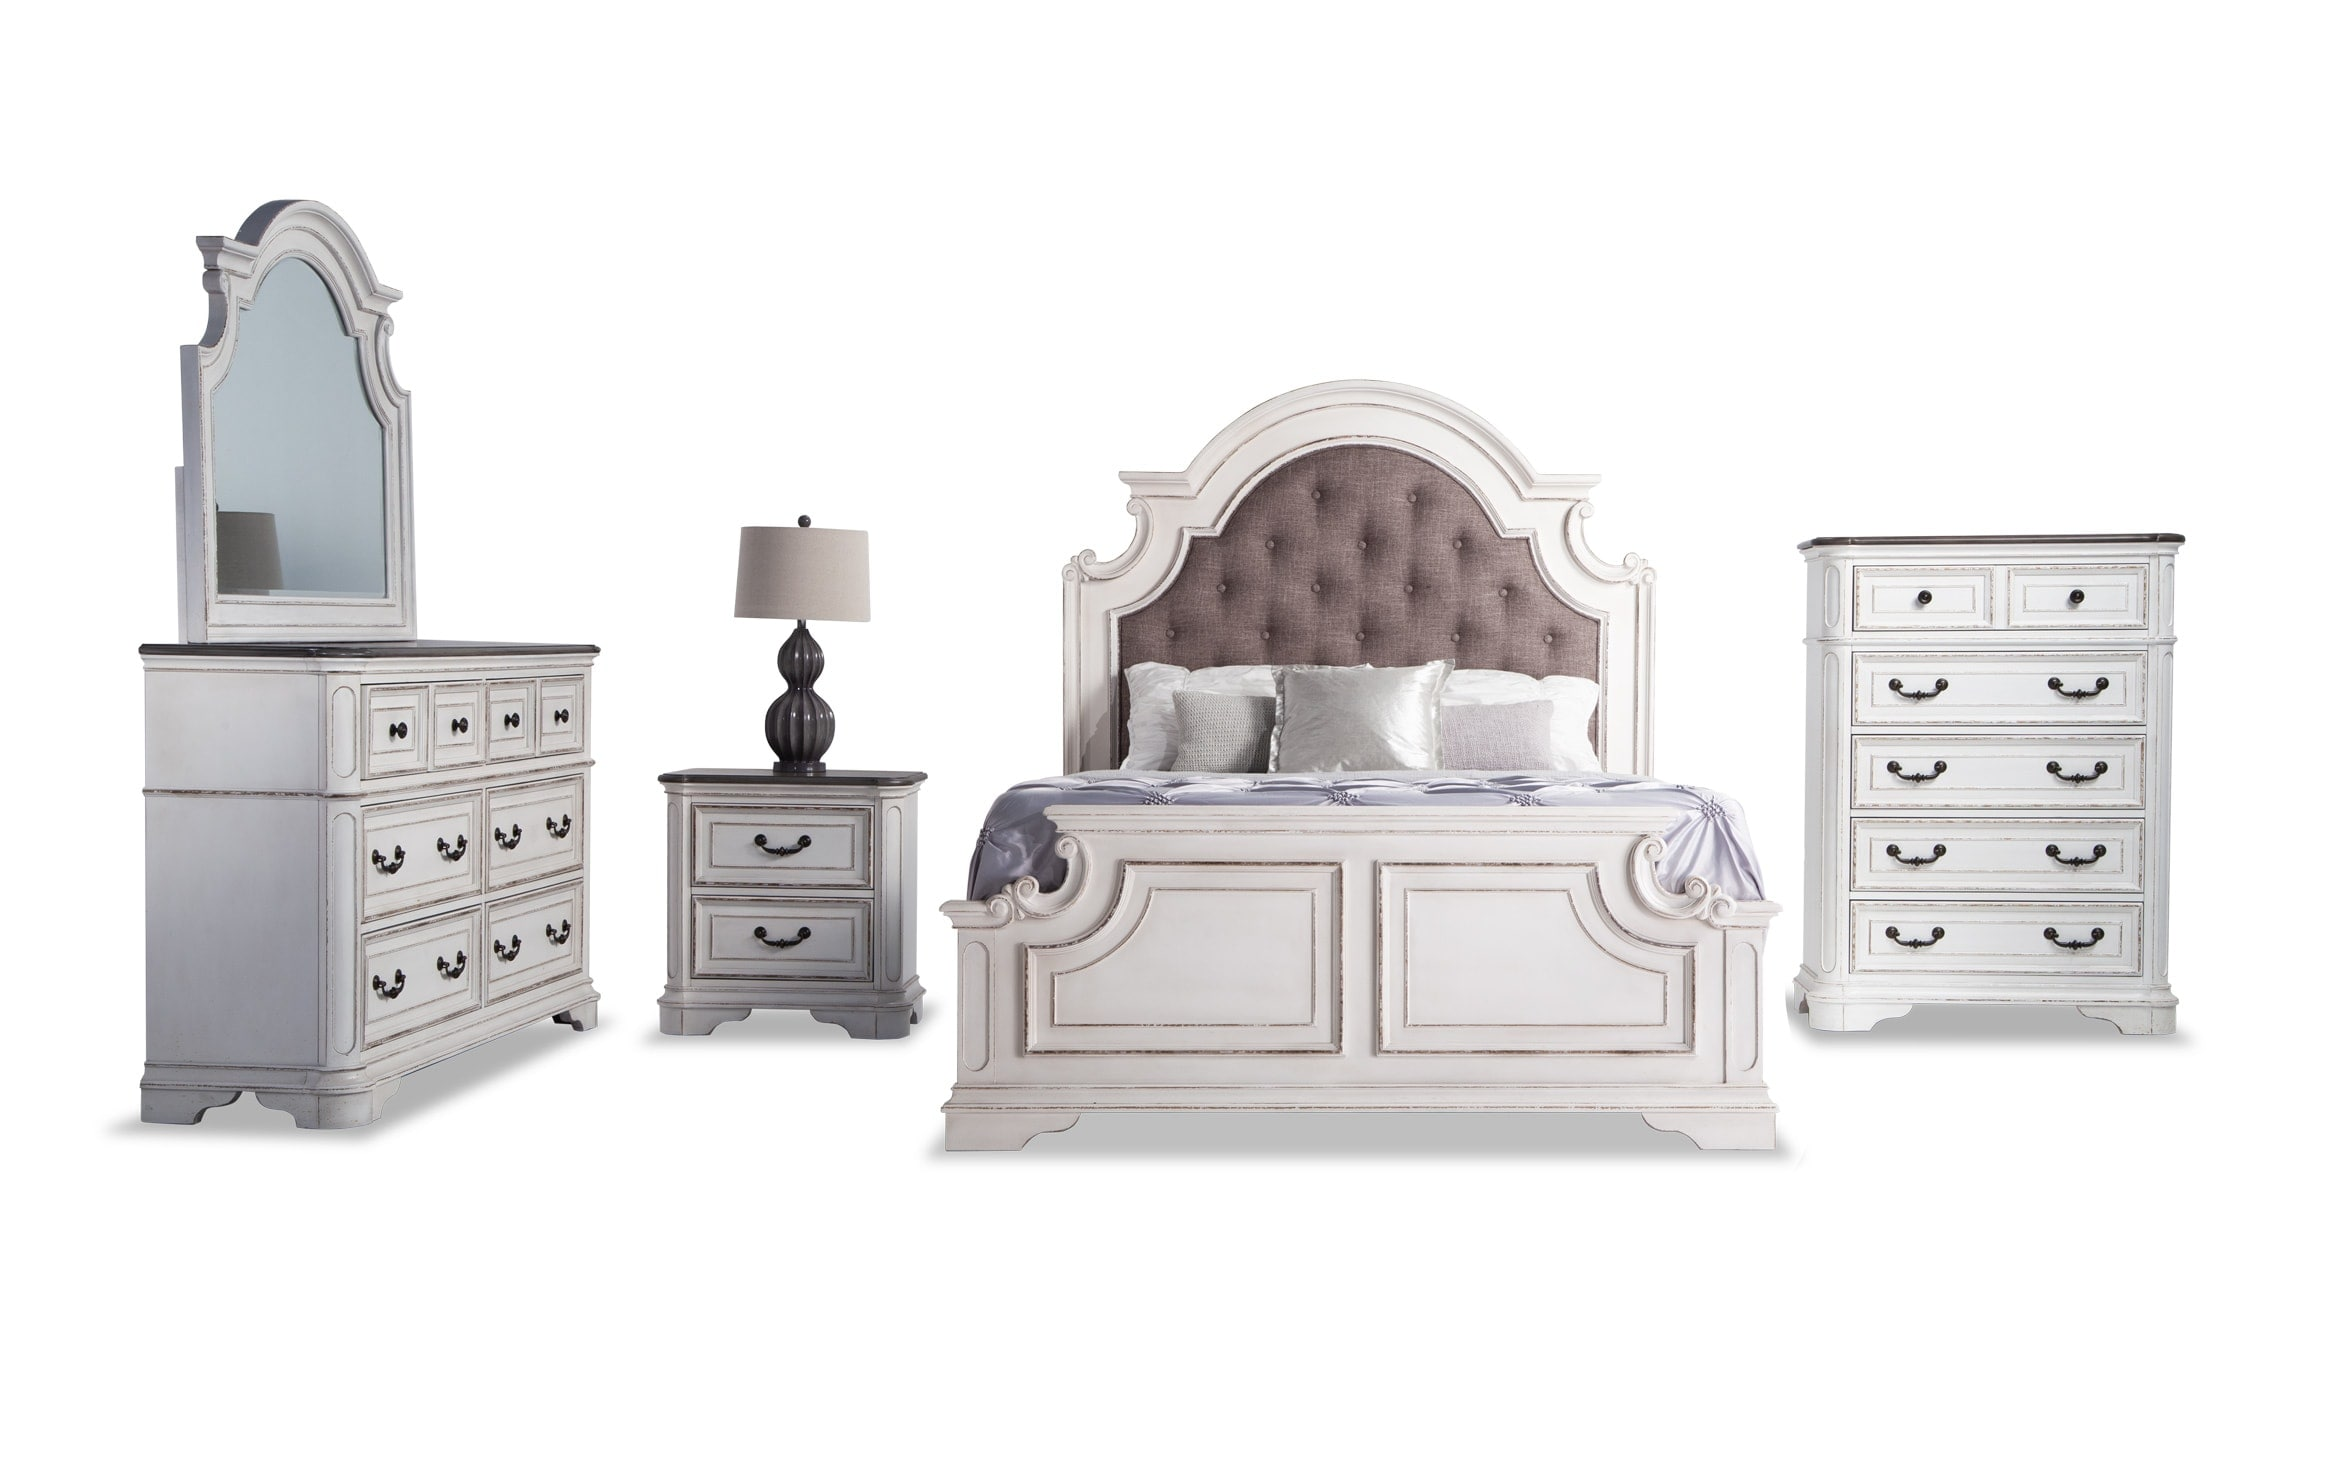 Route 21 furniture is best house furniture outlet located in mcclellandtown, pennsylvania. Scarlett Queen Bedroom Set Bob S Discount Furniture